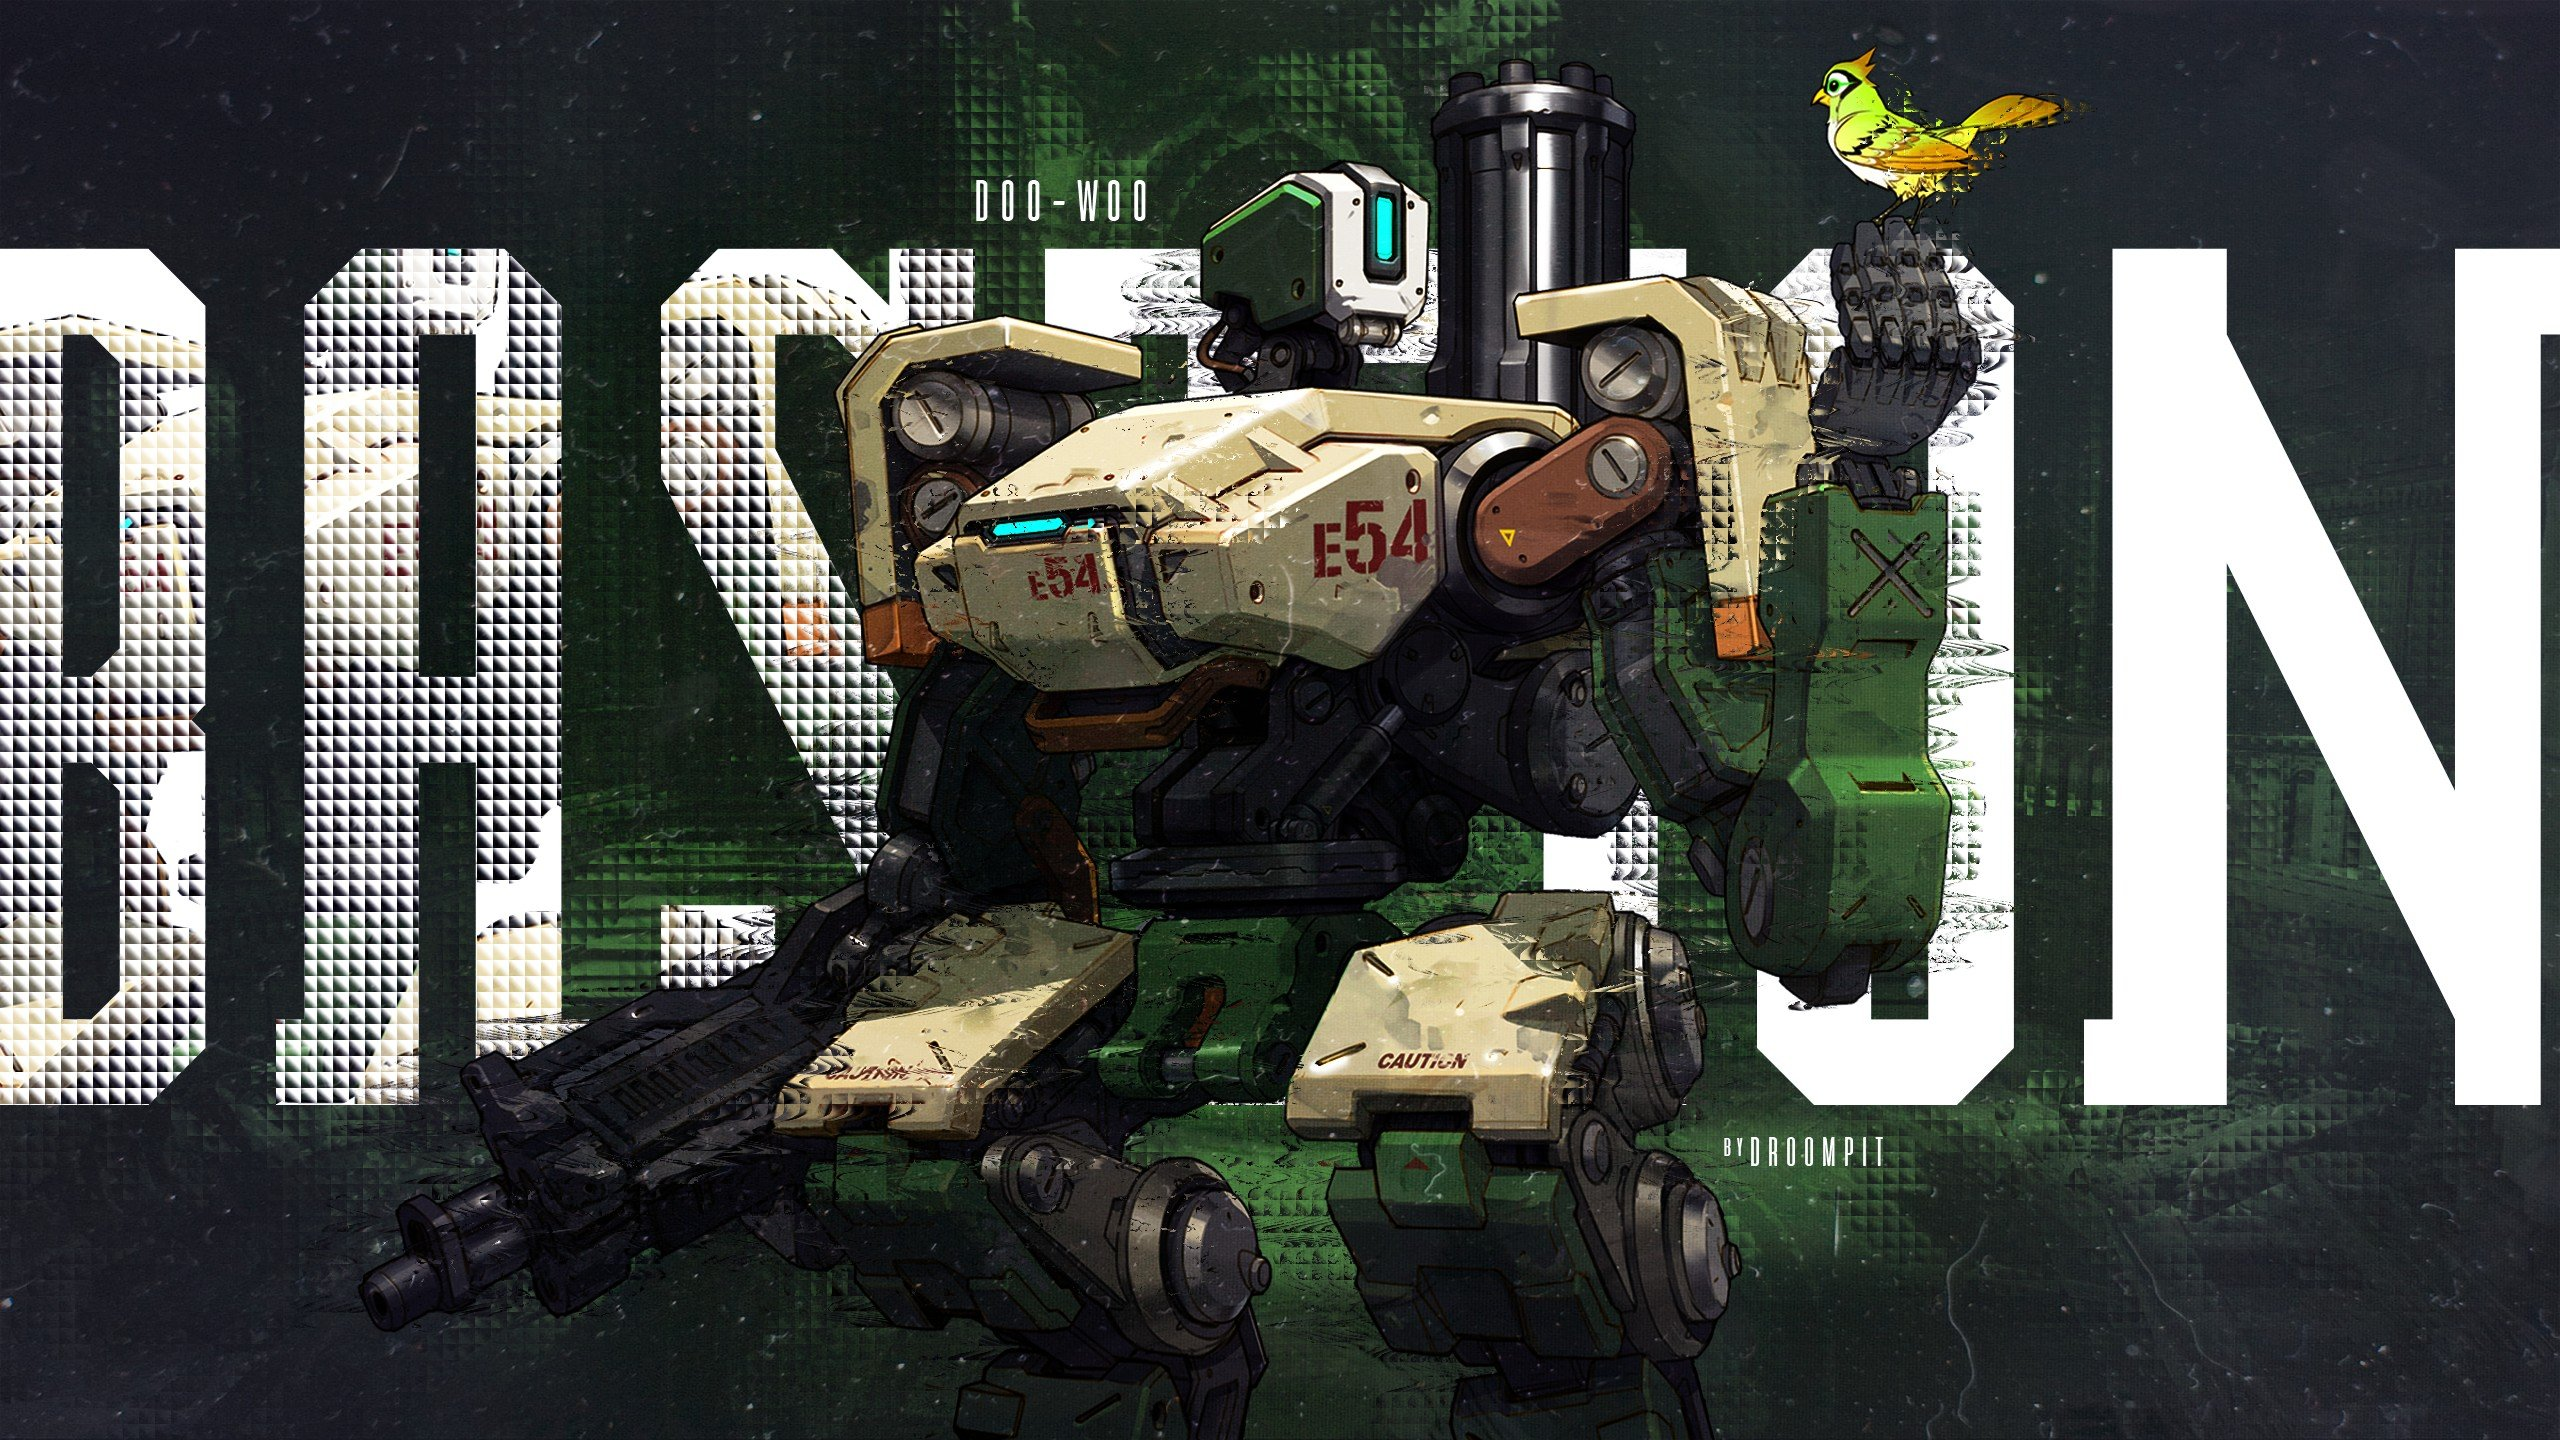 Bastion overwatch overwatch hd wallpapers desktop and mobile images photos - Bastion wallpaper ...